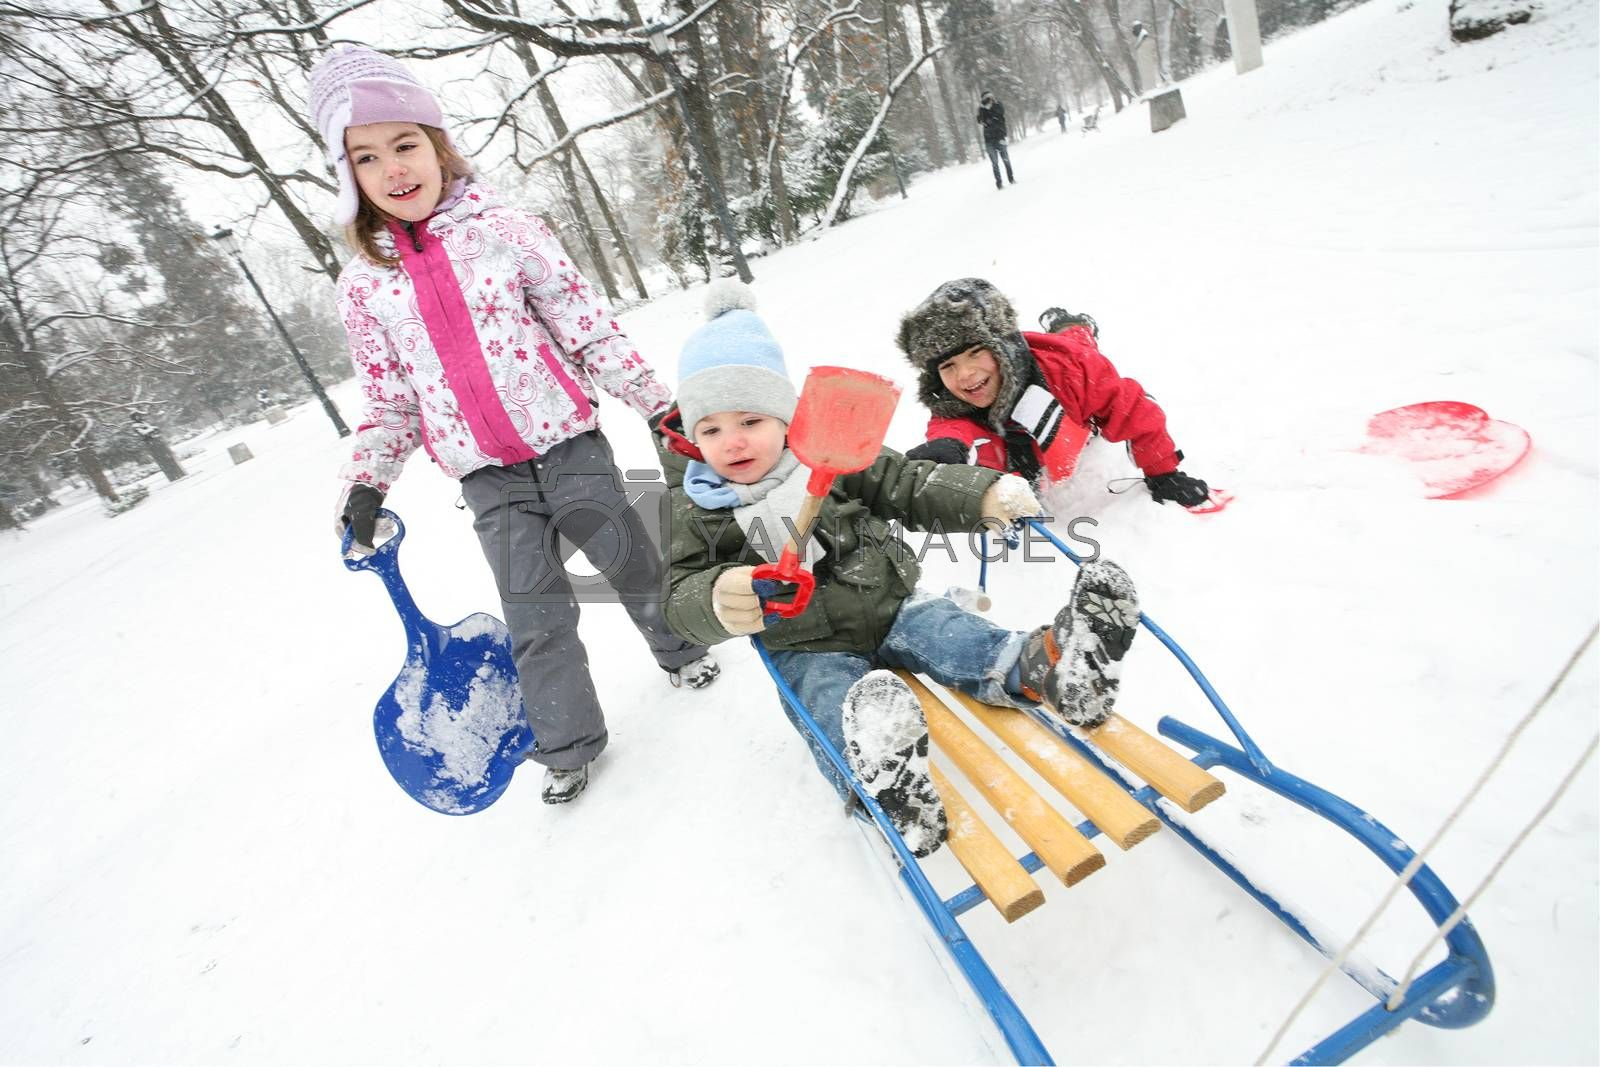 Three kids are playing with sleds in a cold winter day in the park.